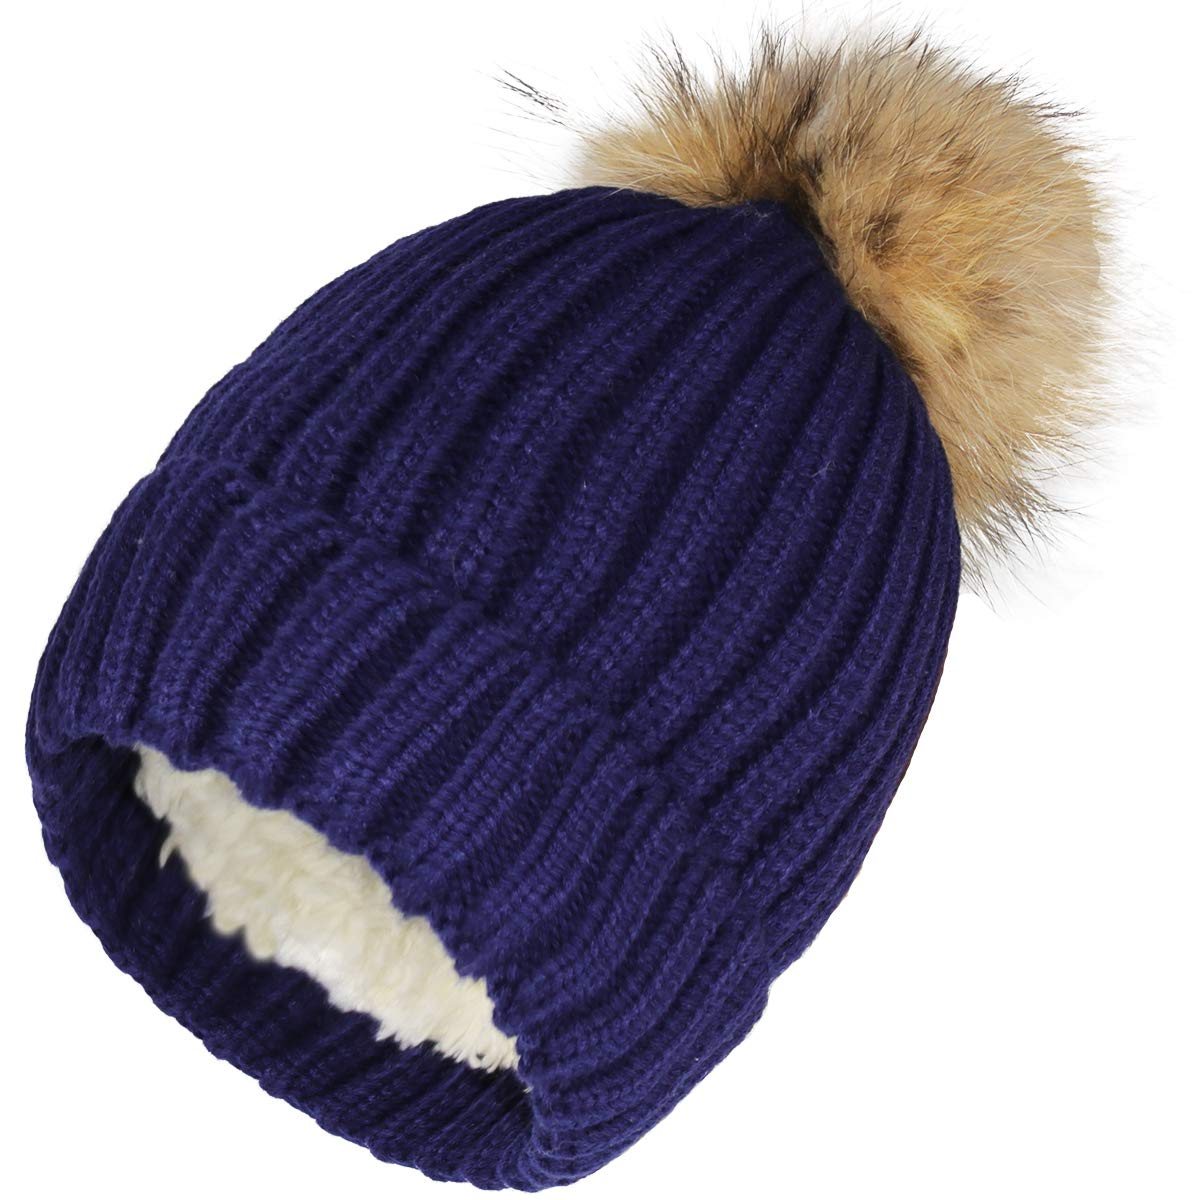 bbc752d68d9db JNINTH Women Pom Hat Ski Cable Knit Beanie Hats for Women with Faux Fur Pom  Pom Blue at Amazon Women's Clothing store: